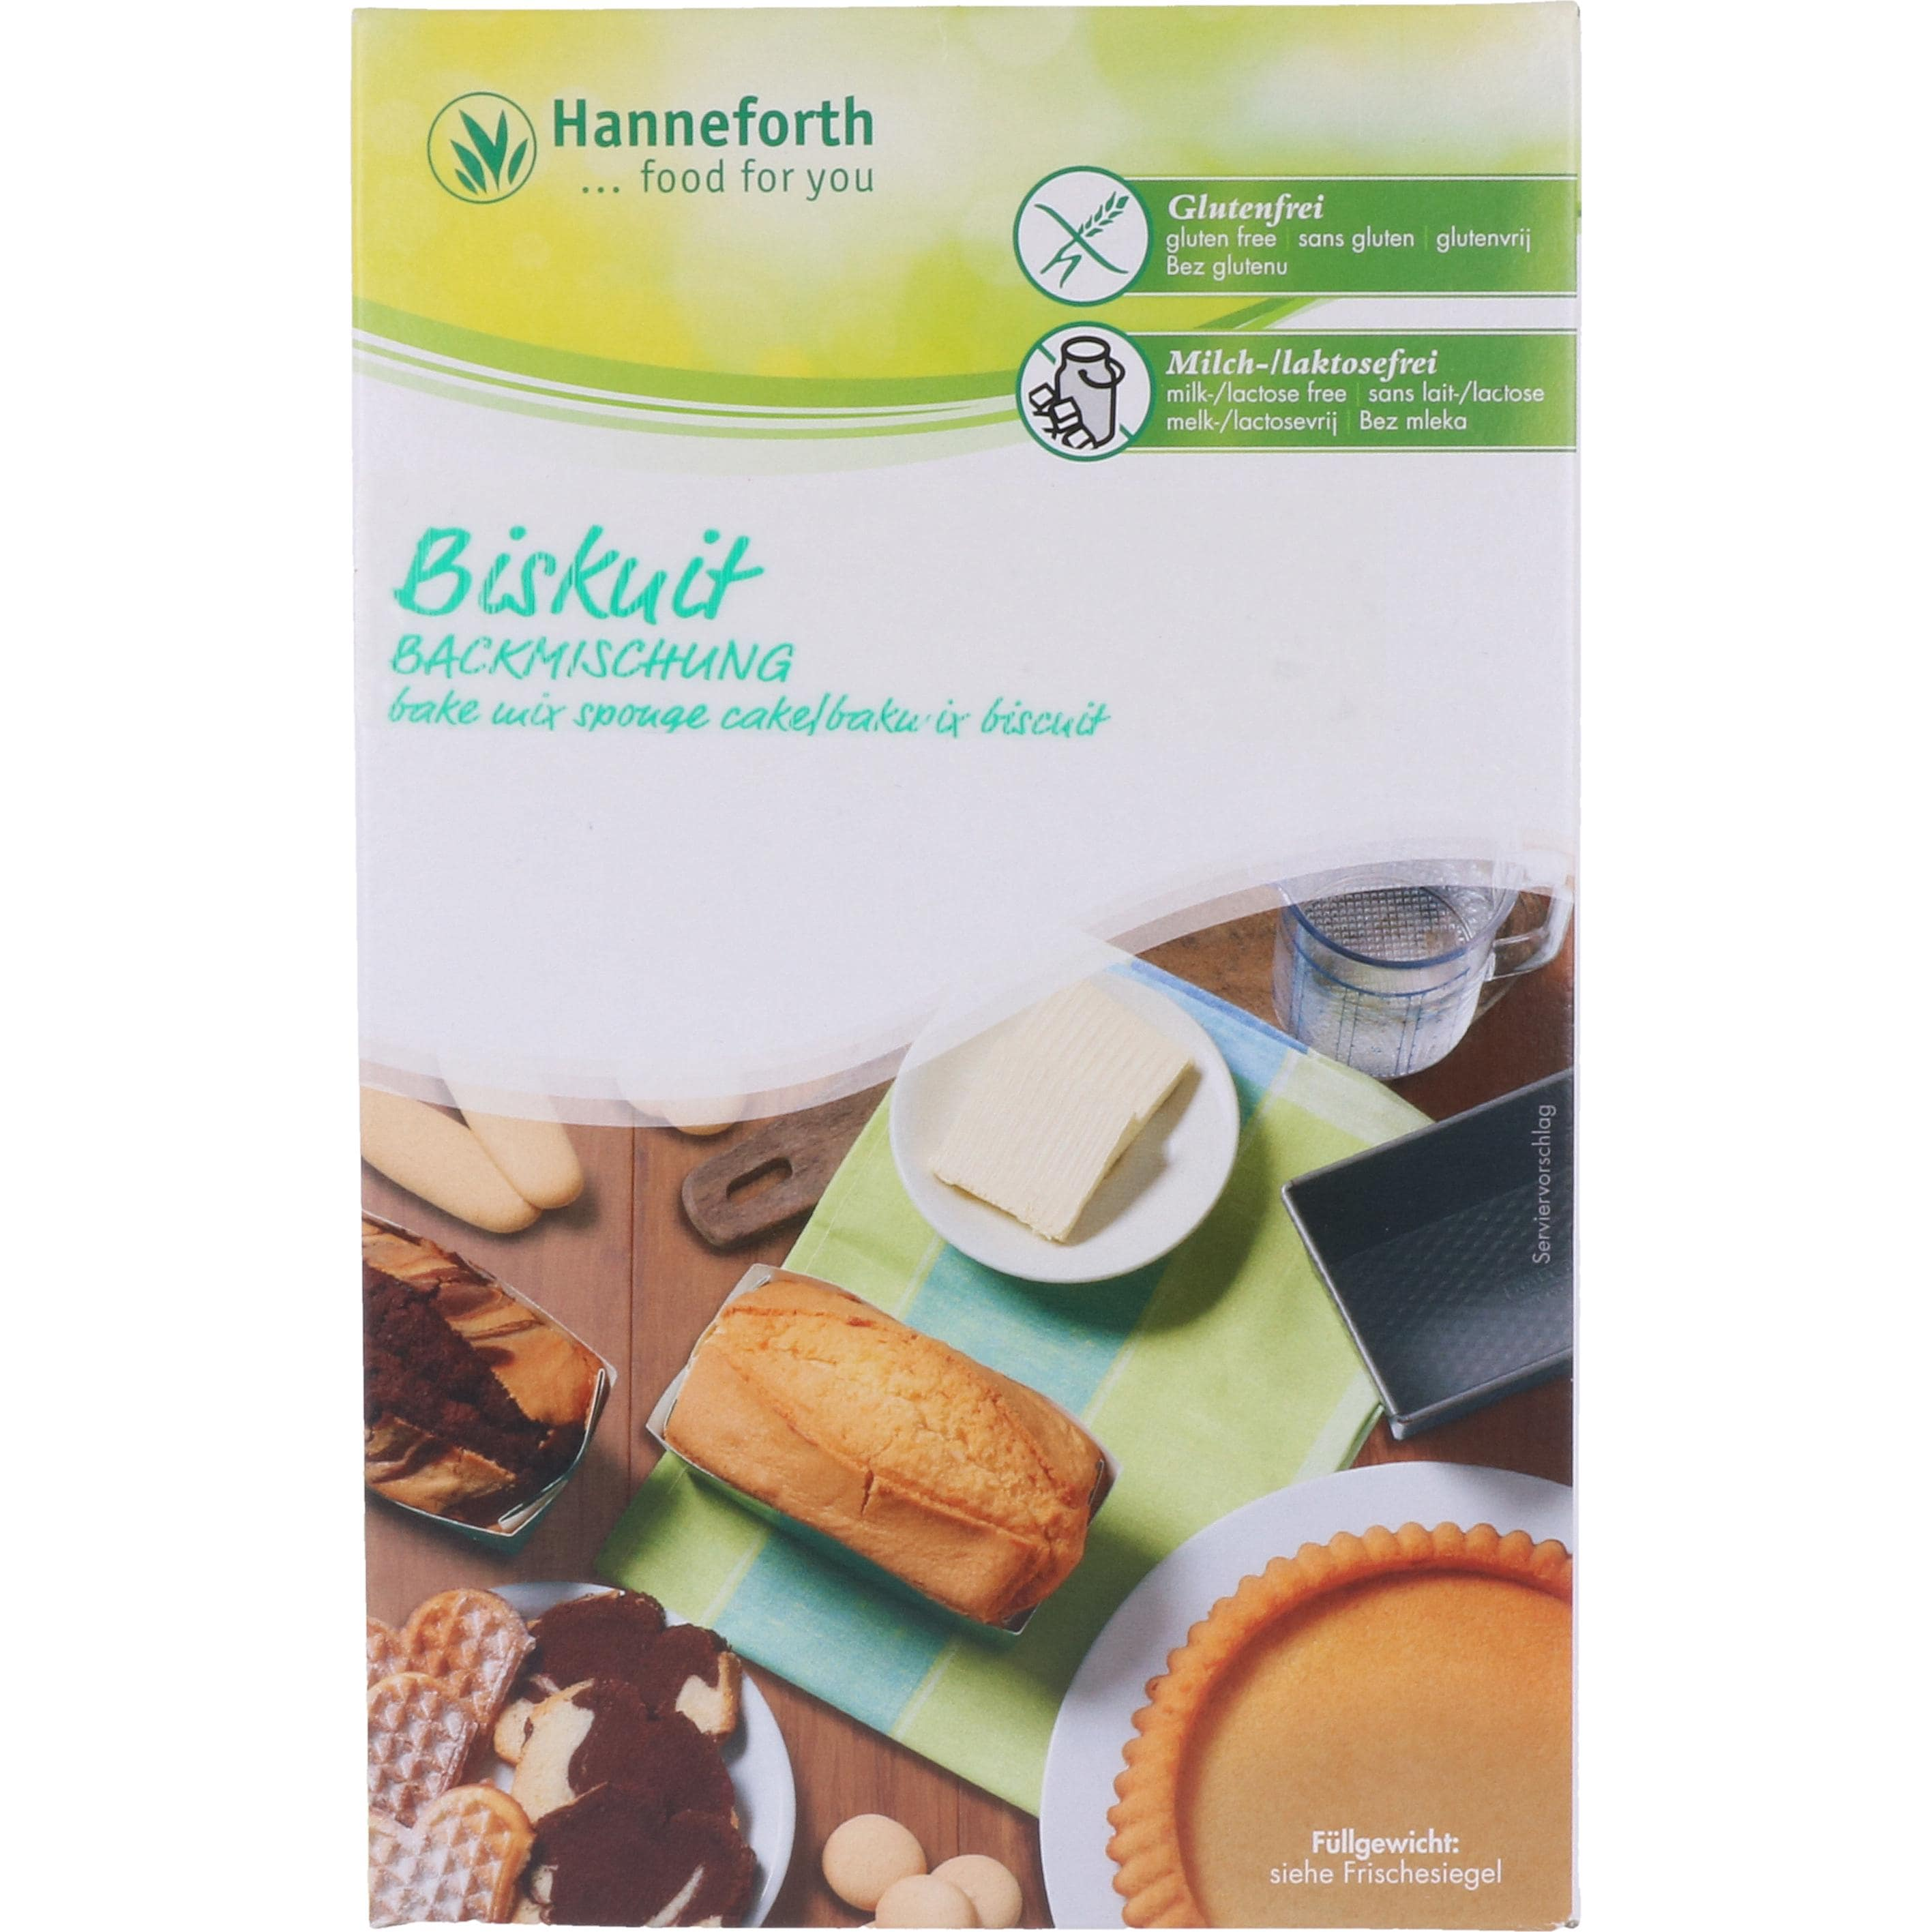 Hanneforth, food for you Backmischung für Biskuit 300g